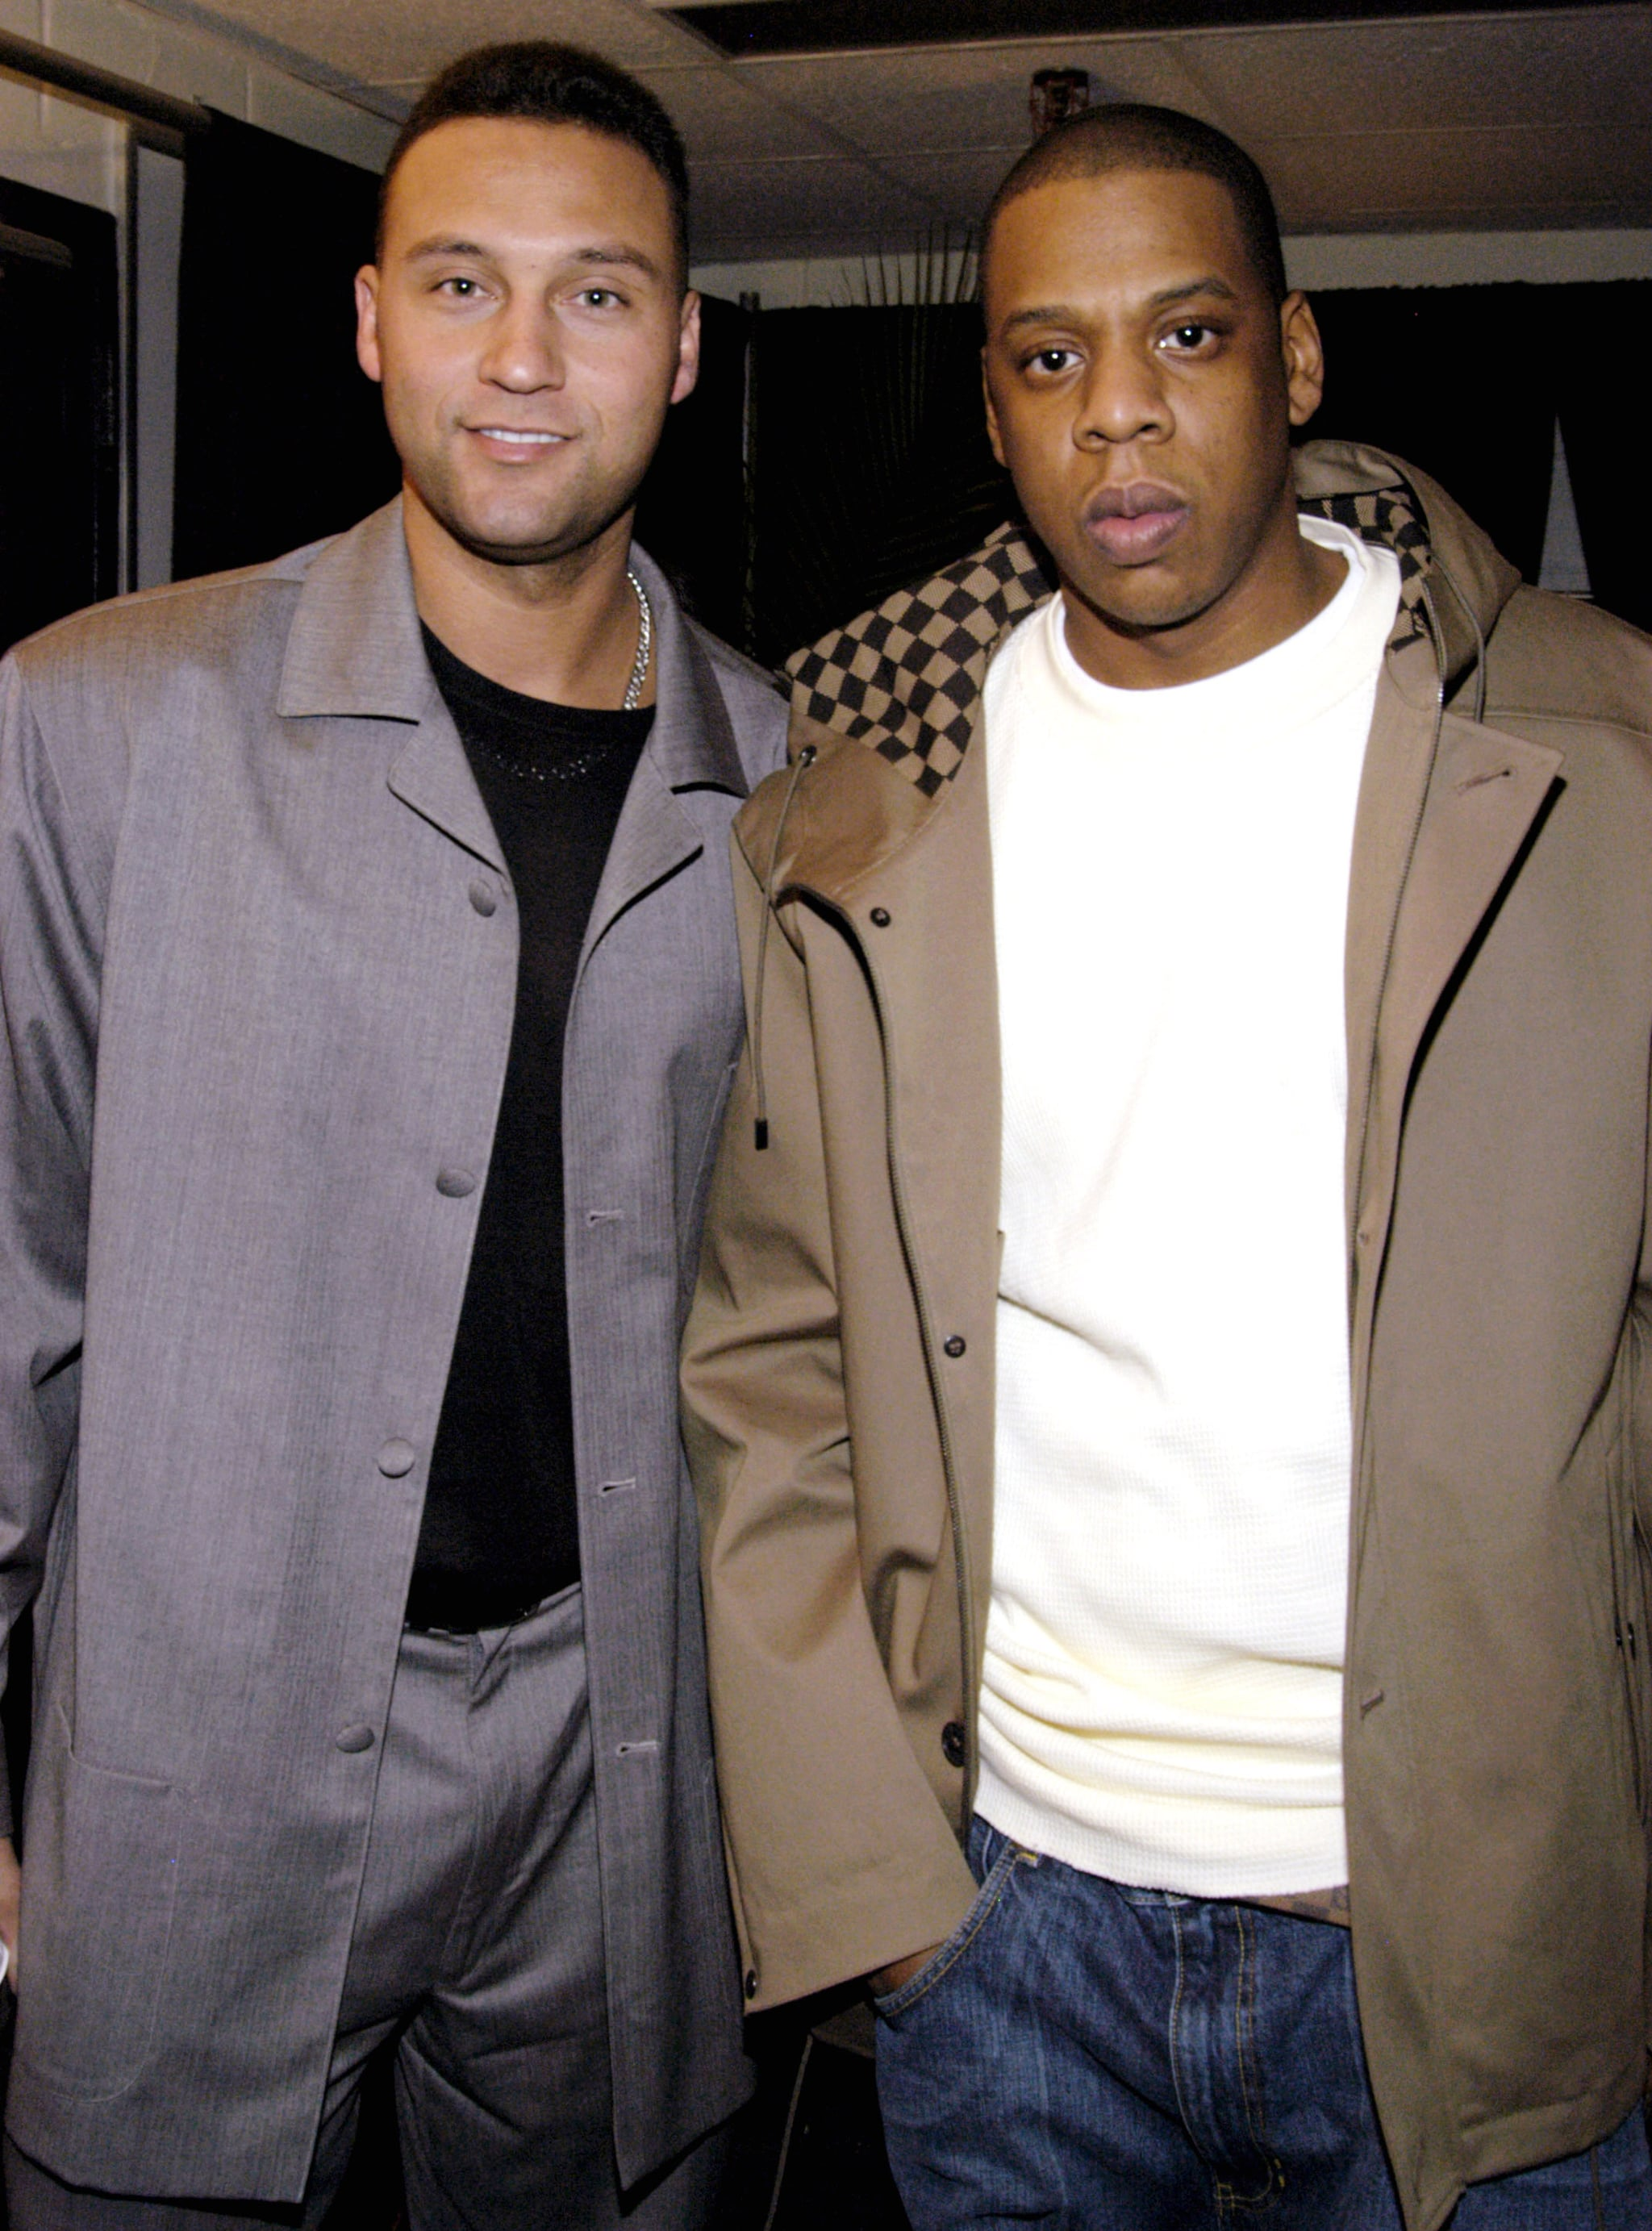 And Hung Out With Jay-Z.